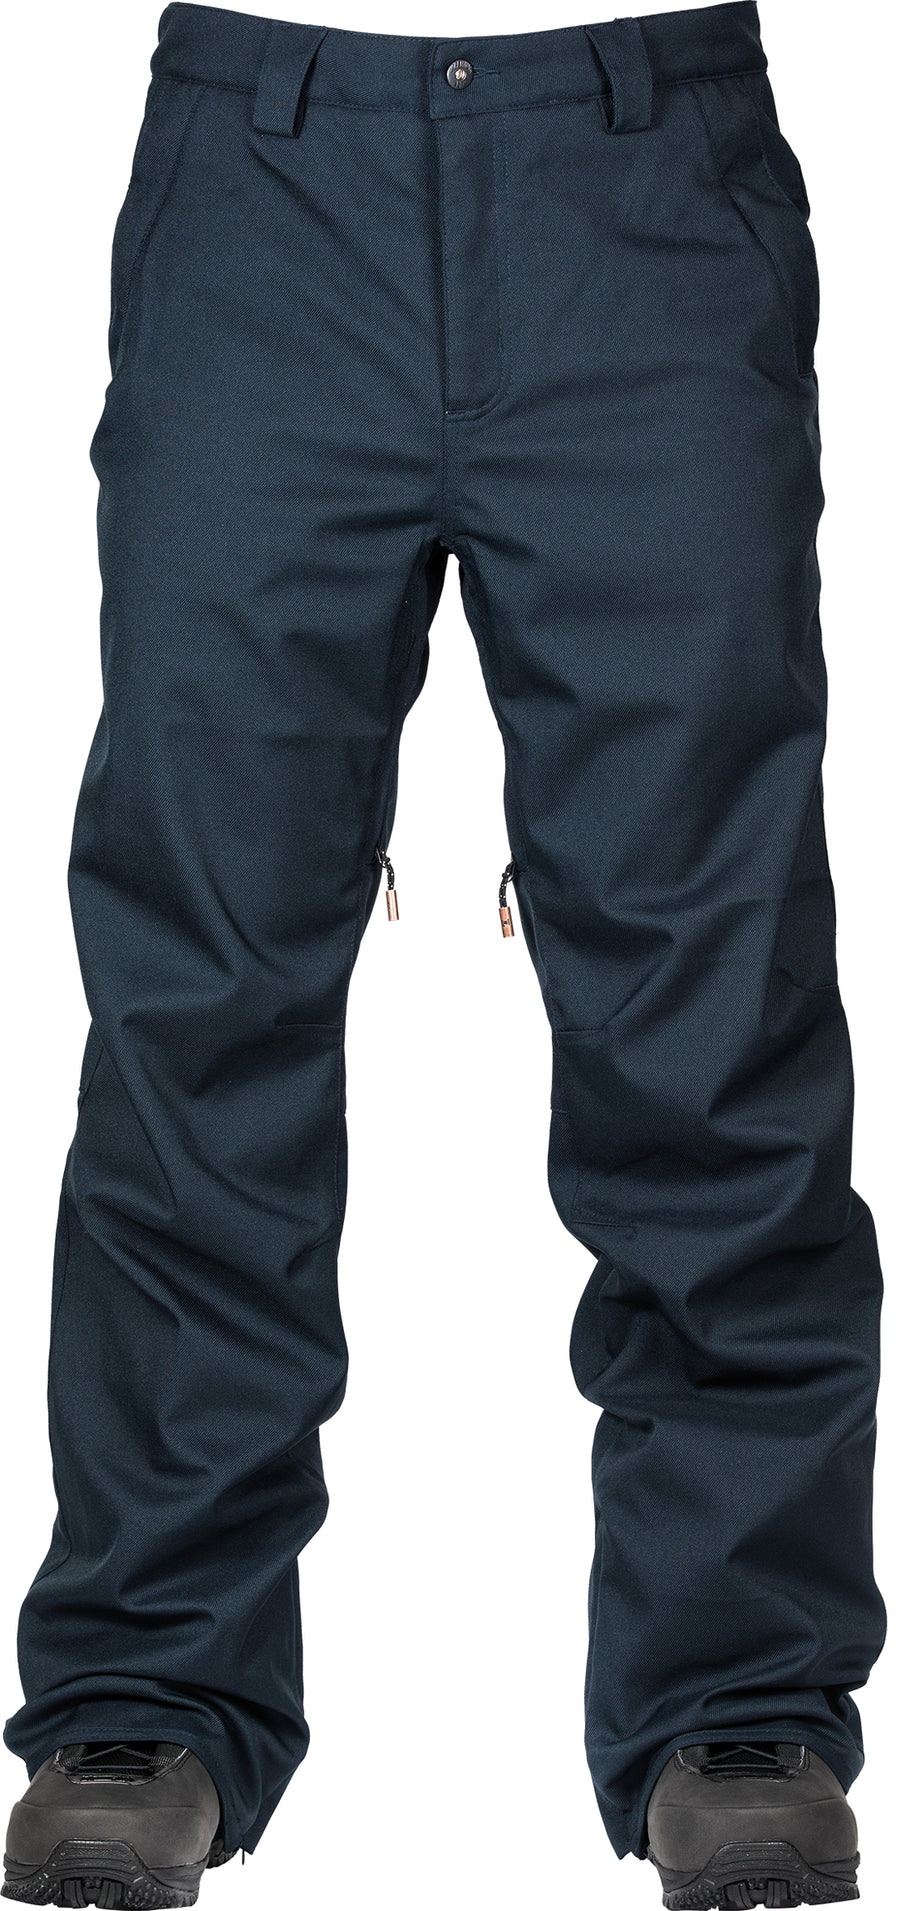 2021 L1 Slim Chino Snow Pant in Ink